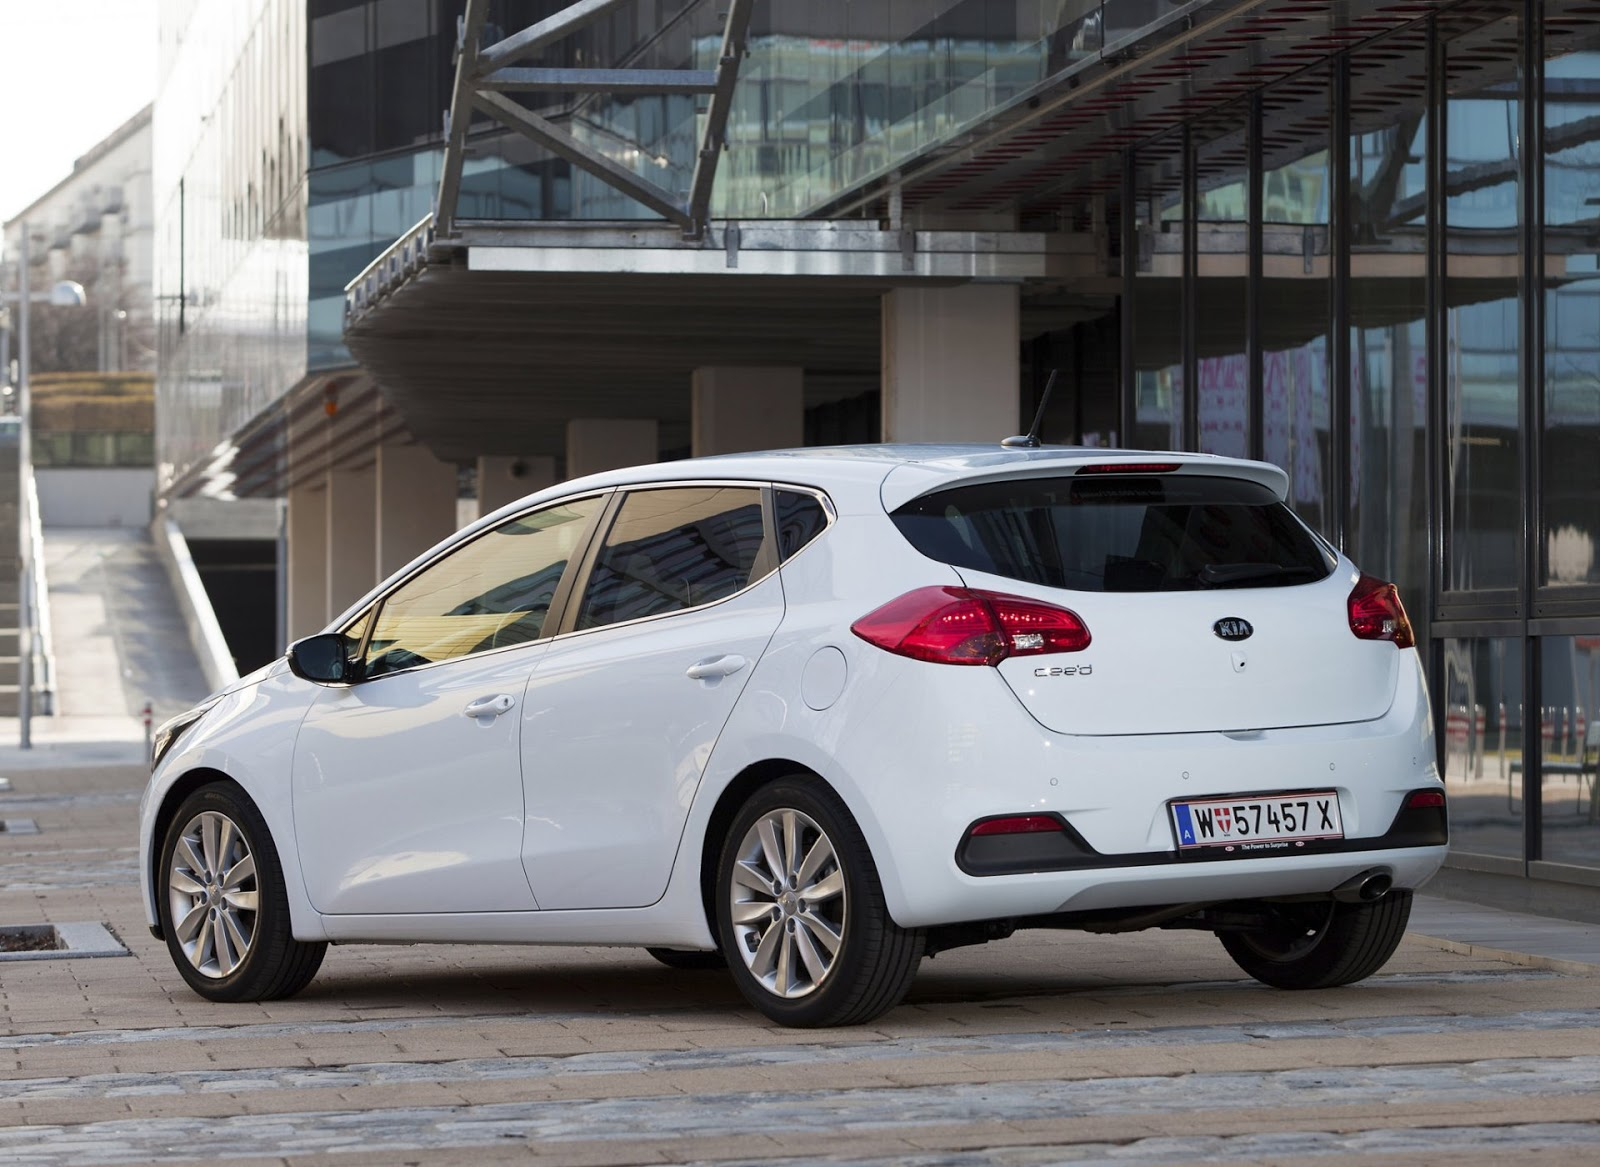 Wallpapers of beautiful cars  Kia Ceed  aka Kia Cee